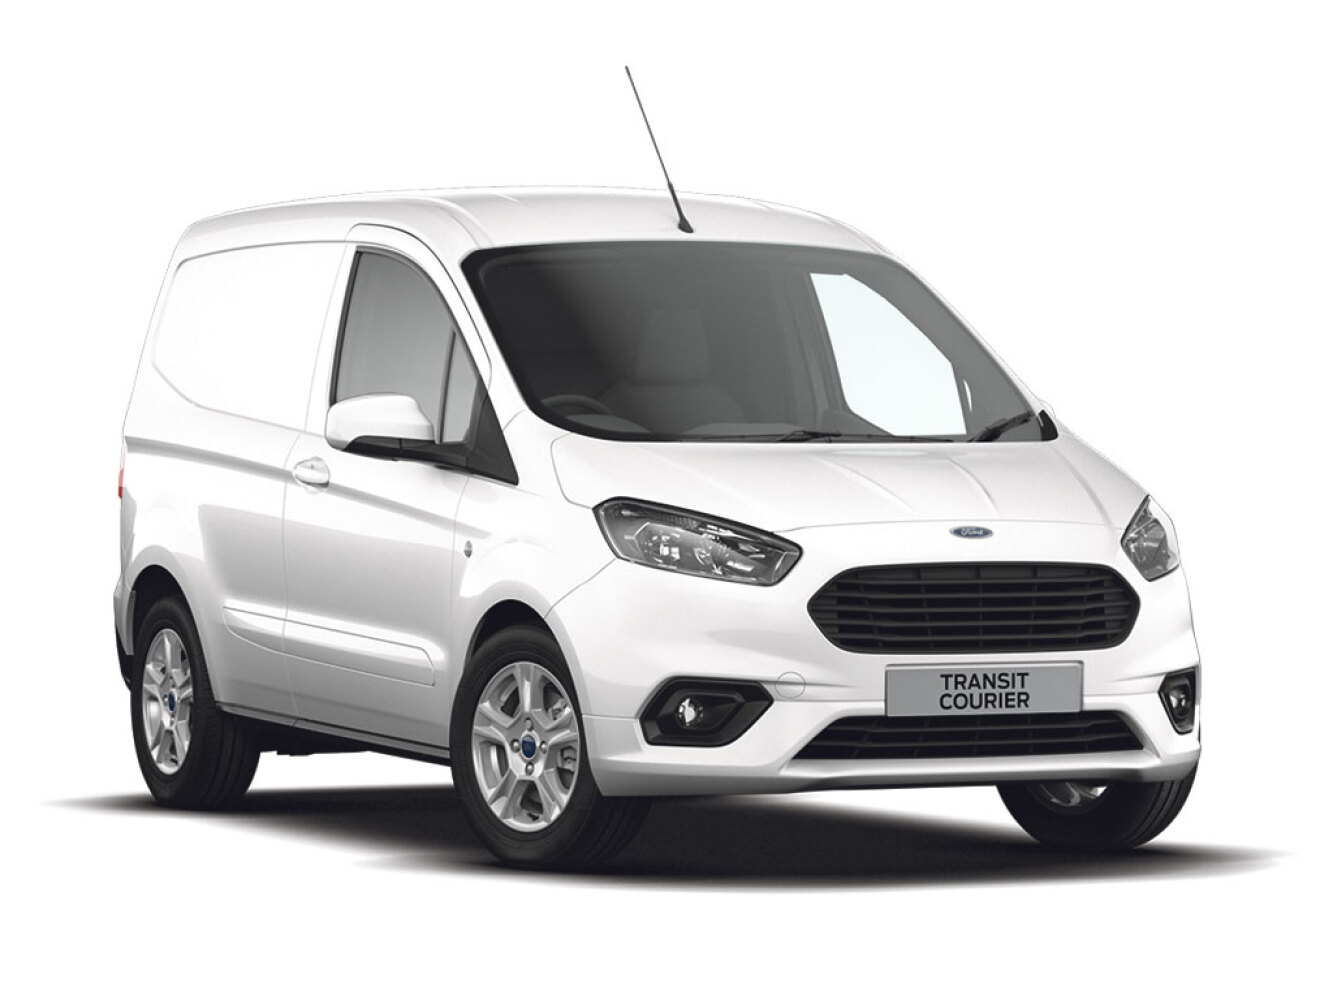 new ford transit courier diesel 1 5 tdci 100ps sport van. Black Bedroom Furniture Sets. Home Design Ideas